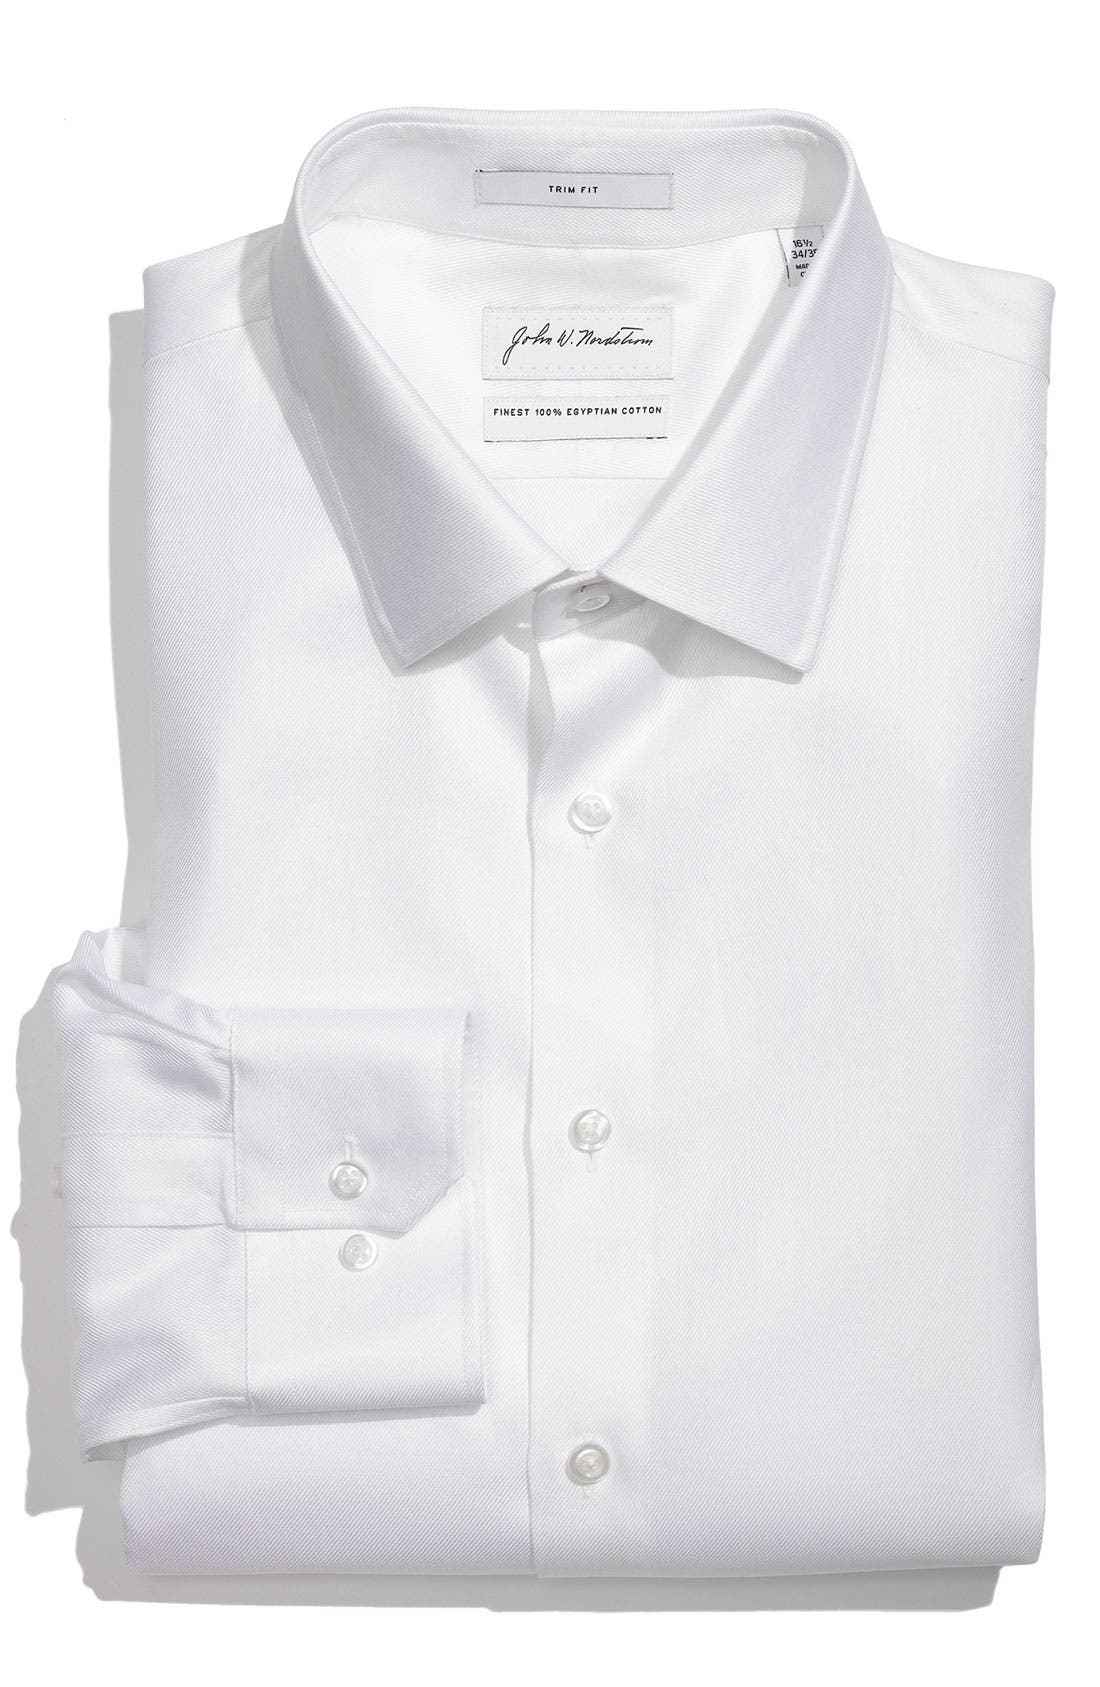 Main Image - John W. Nordstrom® Trim Fit Dress Shirt